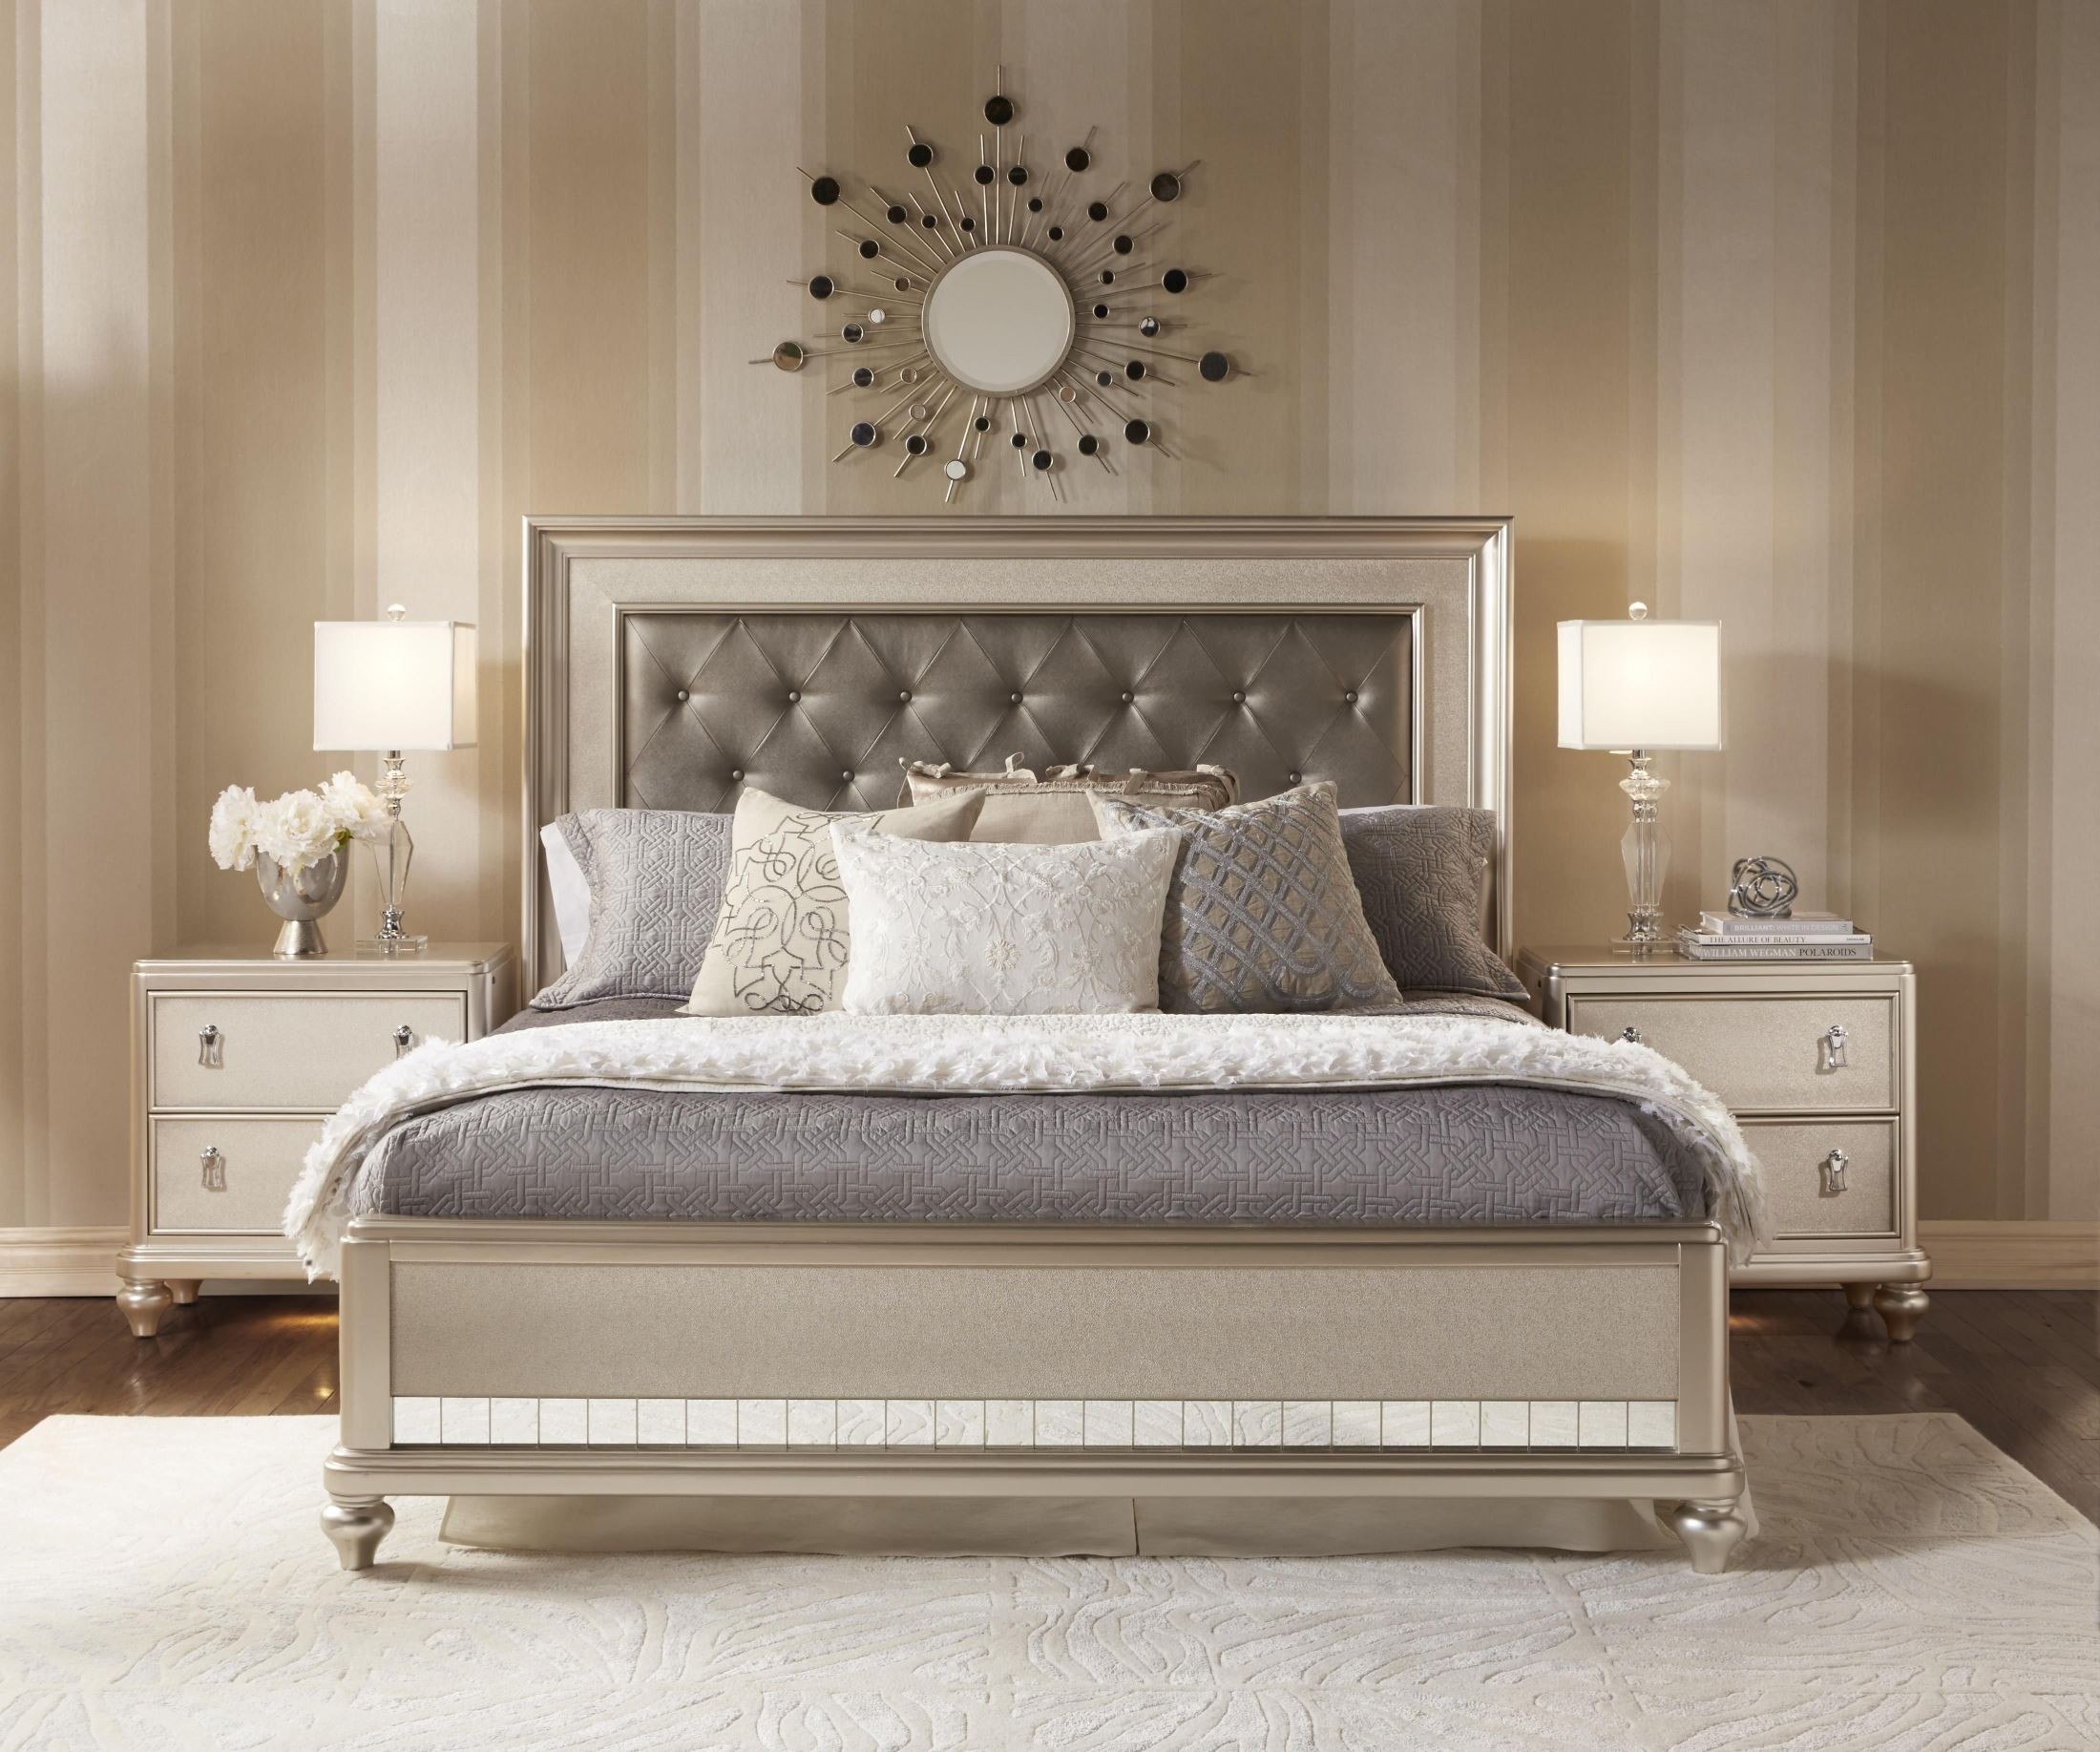 Bedroom sets coleman furniture - 687097